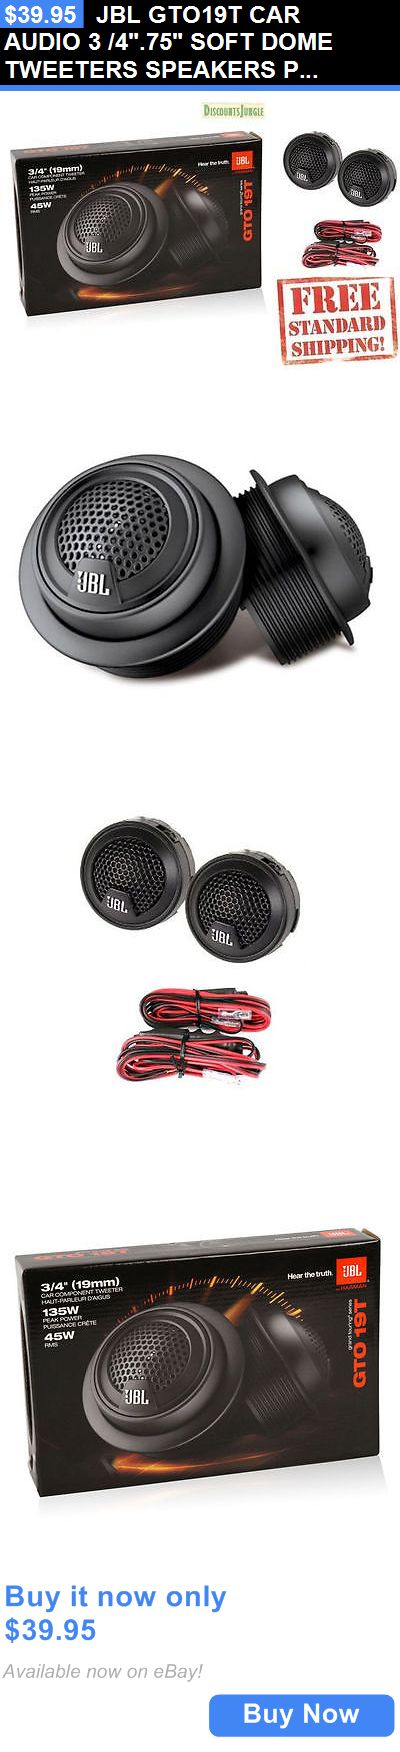 Car Speakers and Speaker Systems: Jbl Gto19t Car Audio 3 /4.75 Soft Dome Tweeters Speakers Pair Set W/Crossover BUY IT NOW ONLY: $39.95